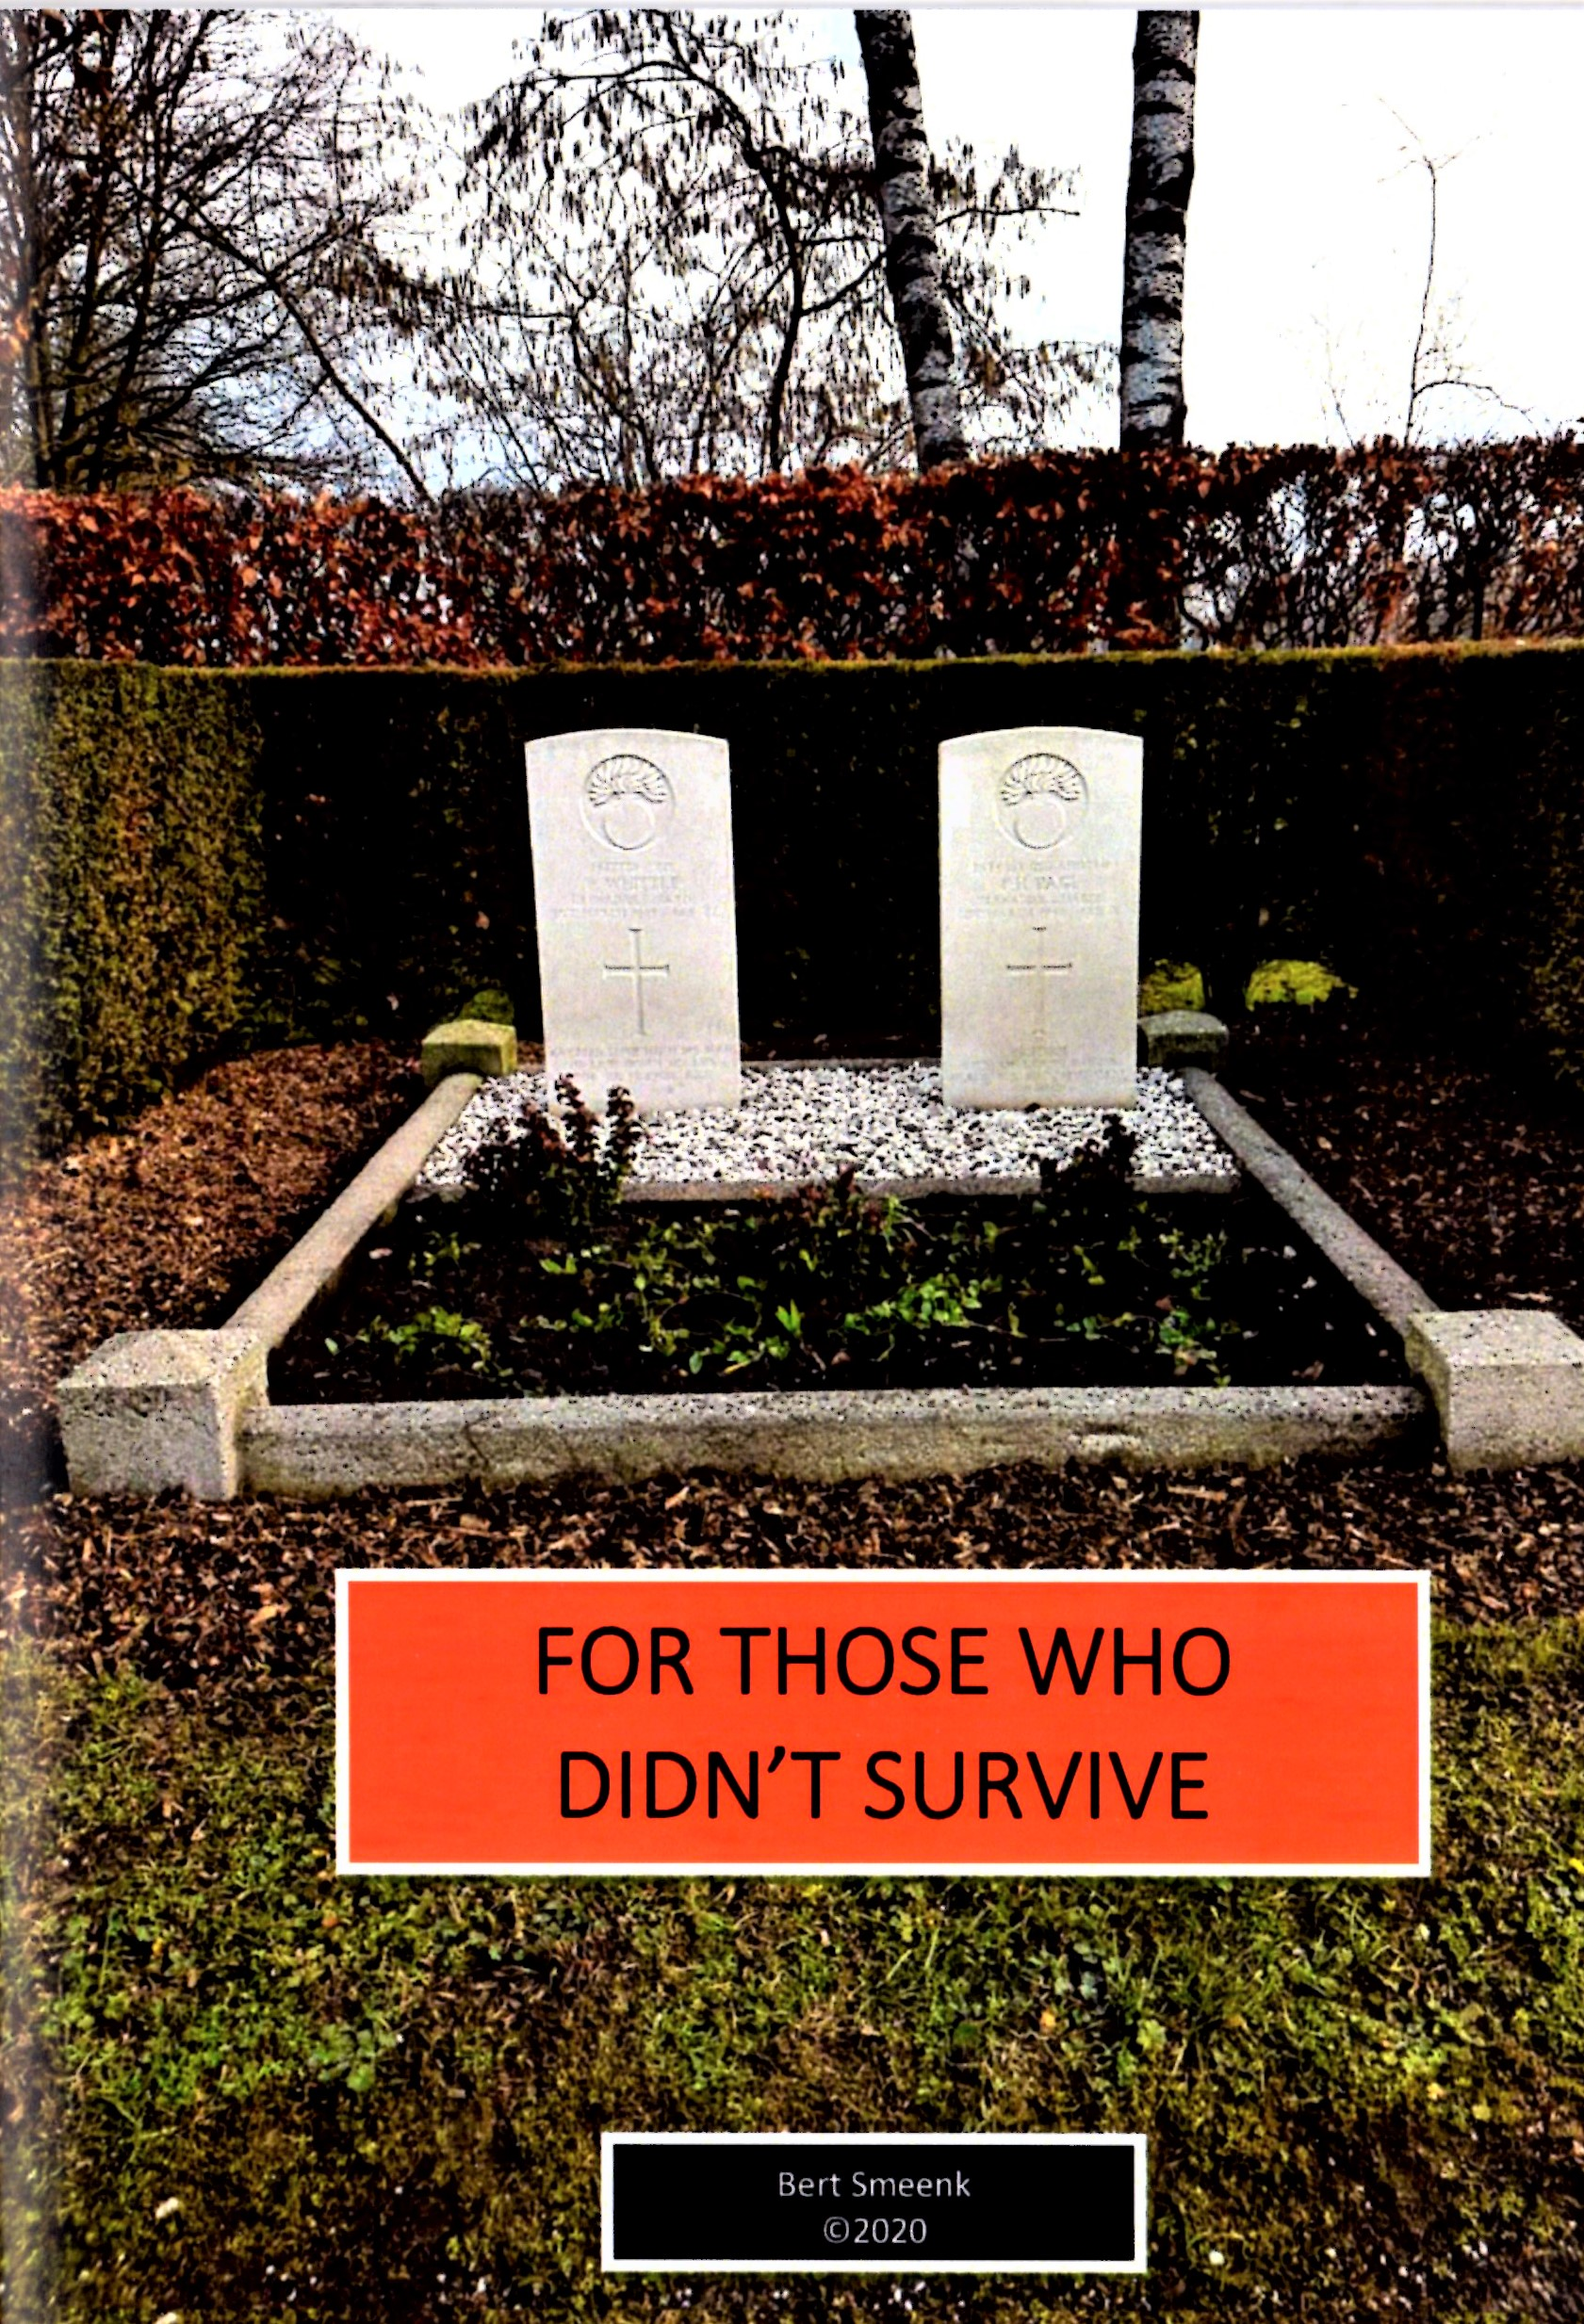 For those who didn't survive